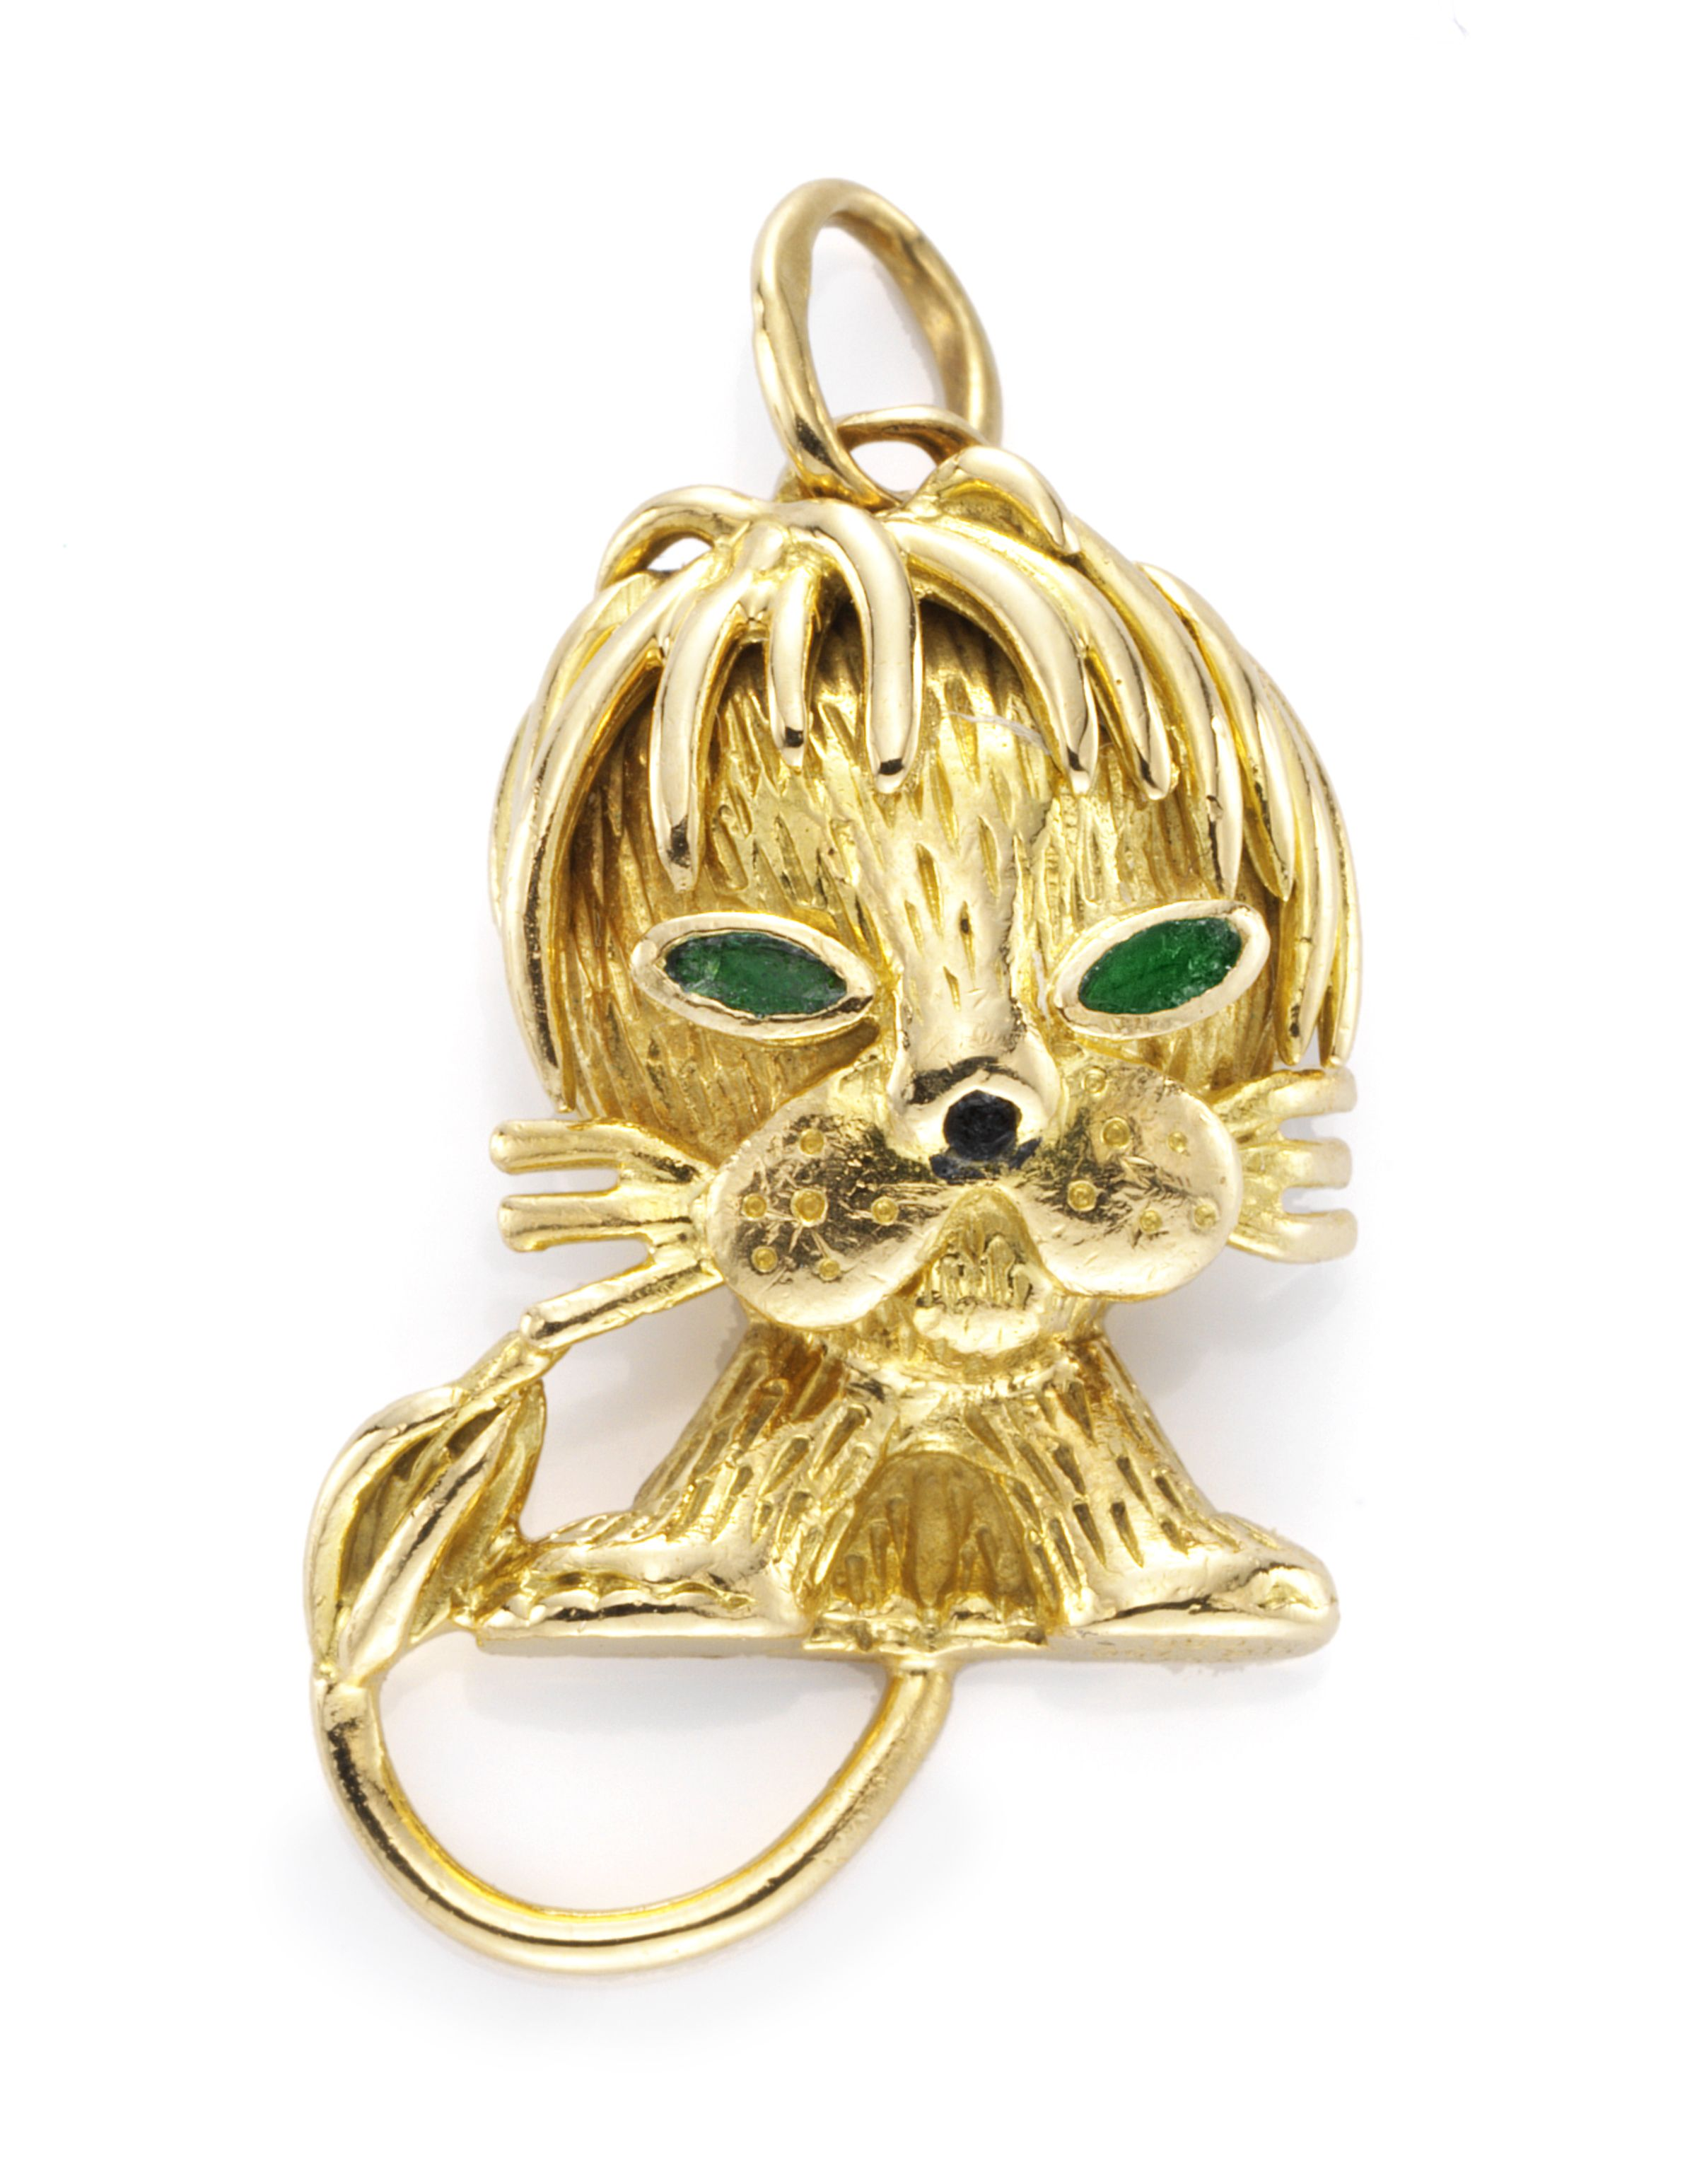 lion and pendant by gold pin emerald van cleef arpels an